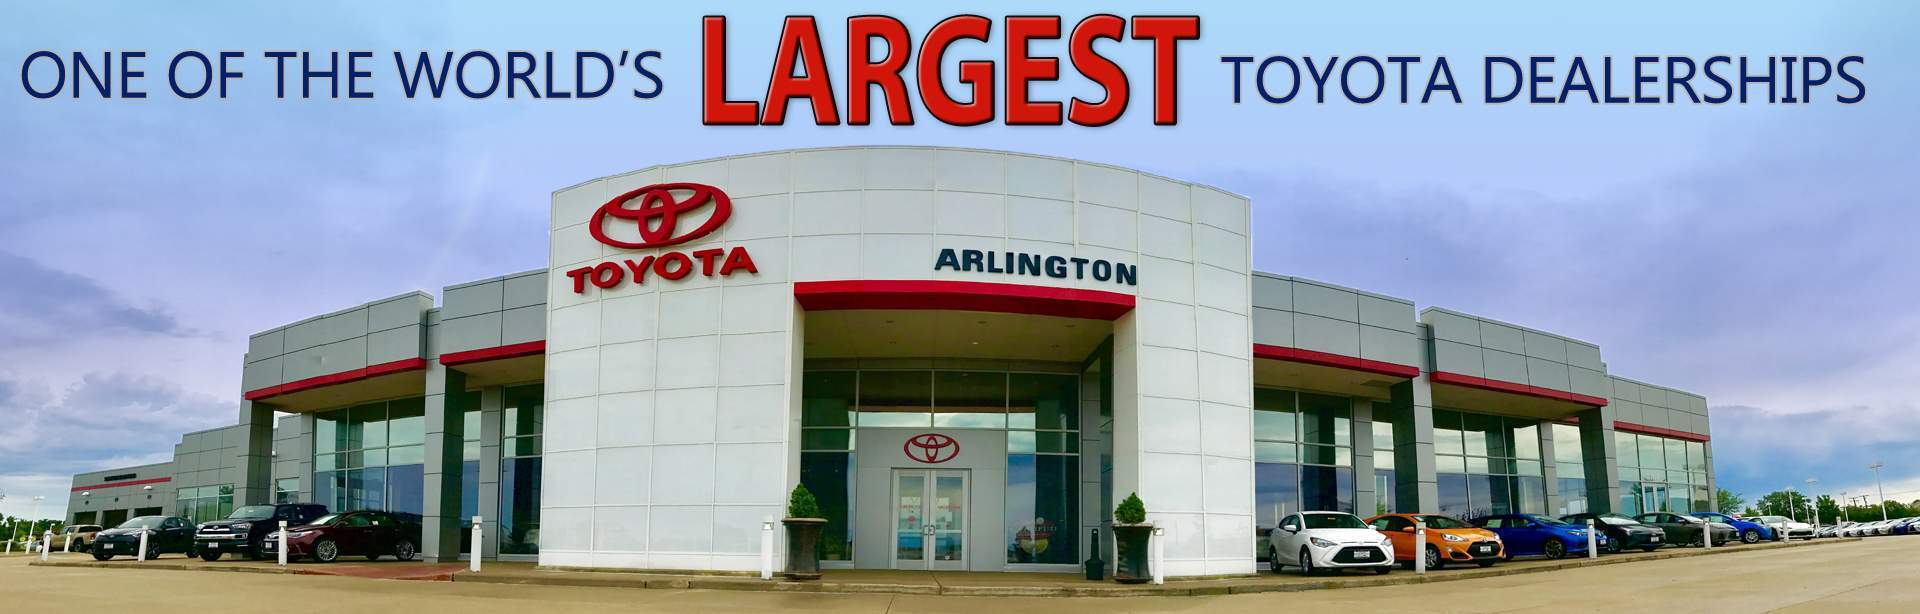 largest dealership